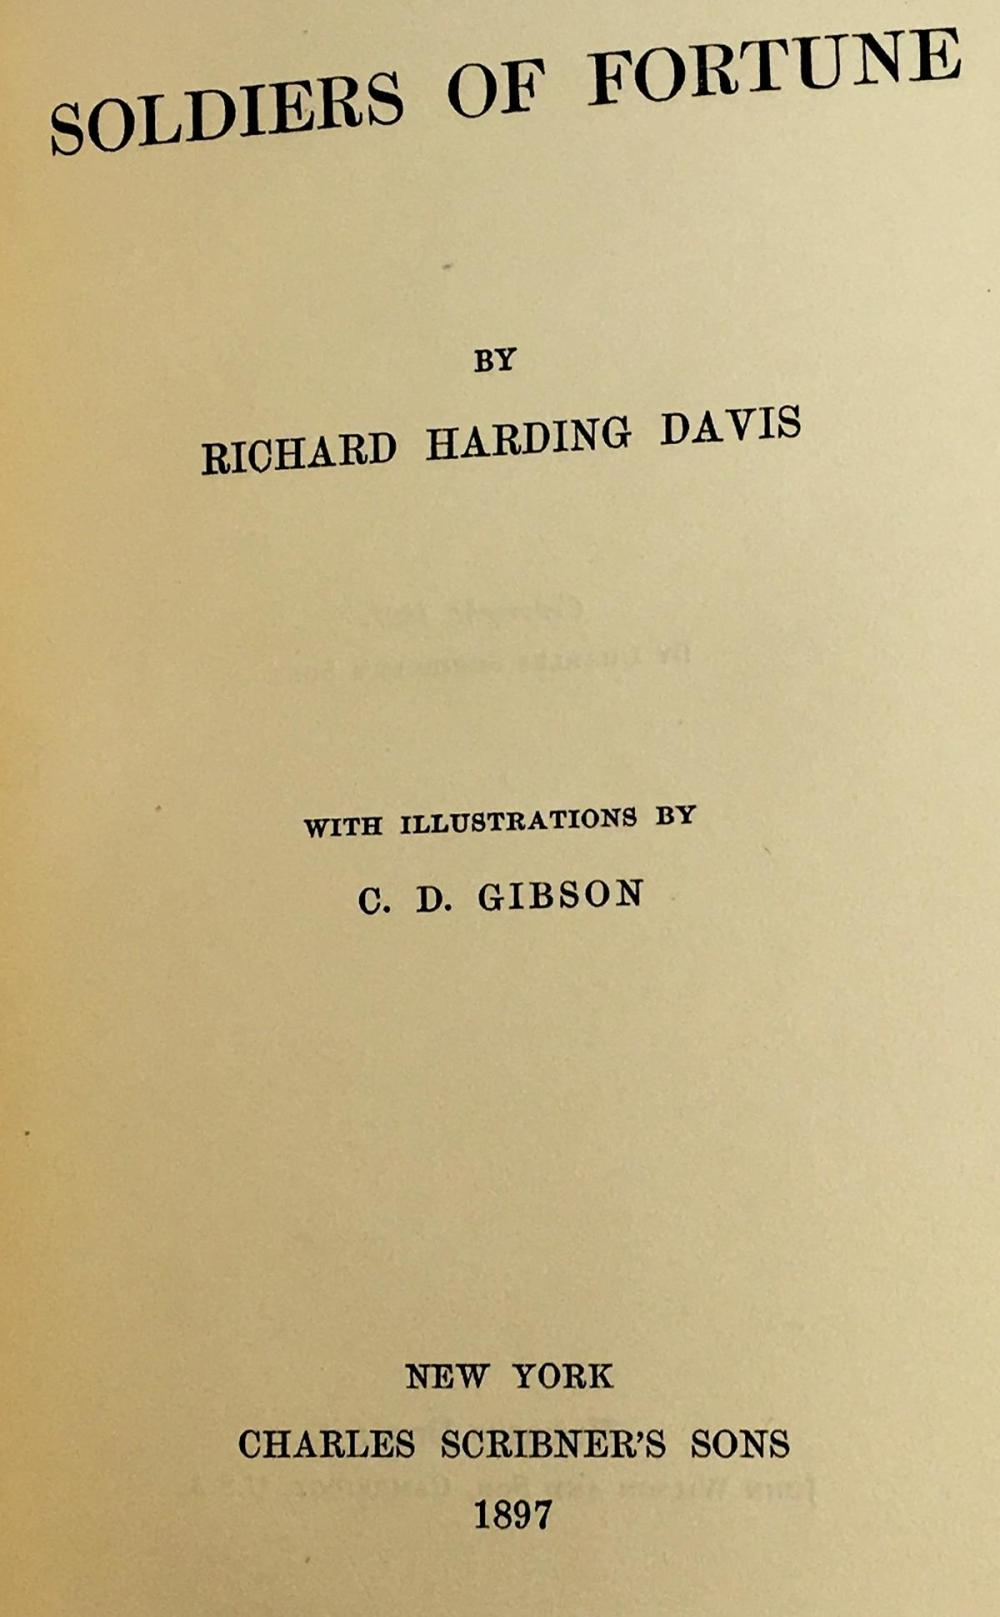 1897 Soldiers of Fortune by Richard Harding Davis Illustrated by Dana Gibson FIRST EDITION